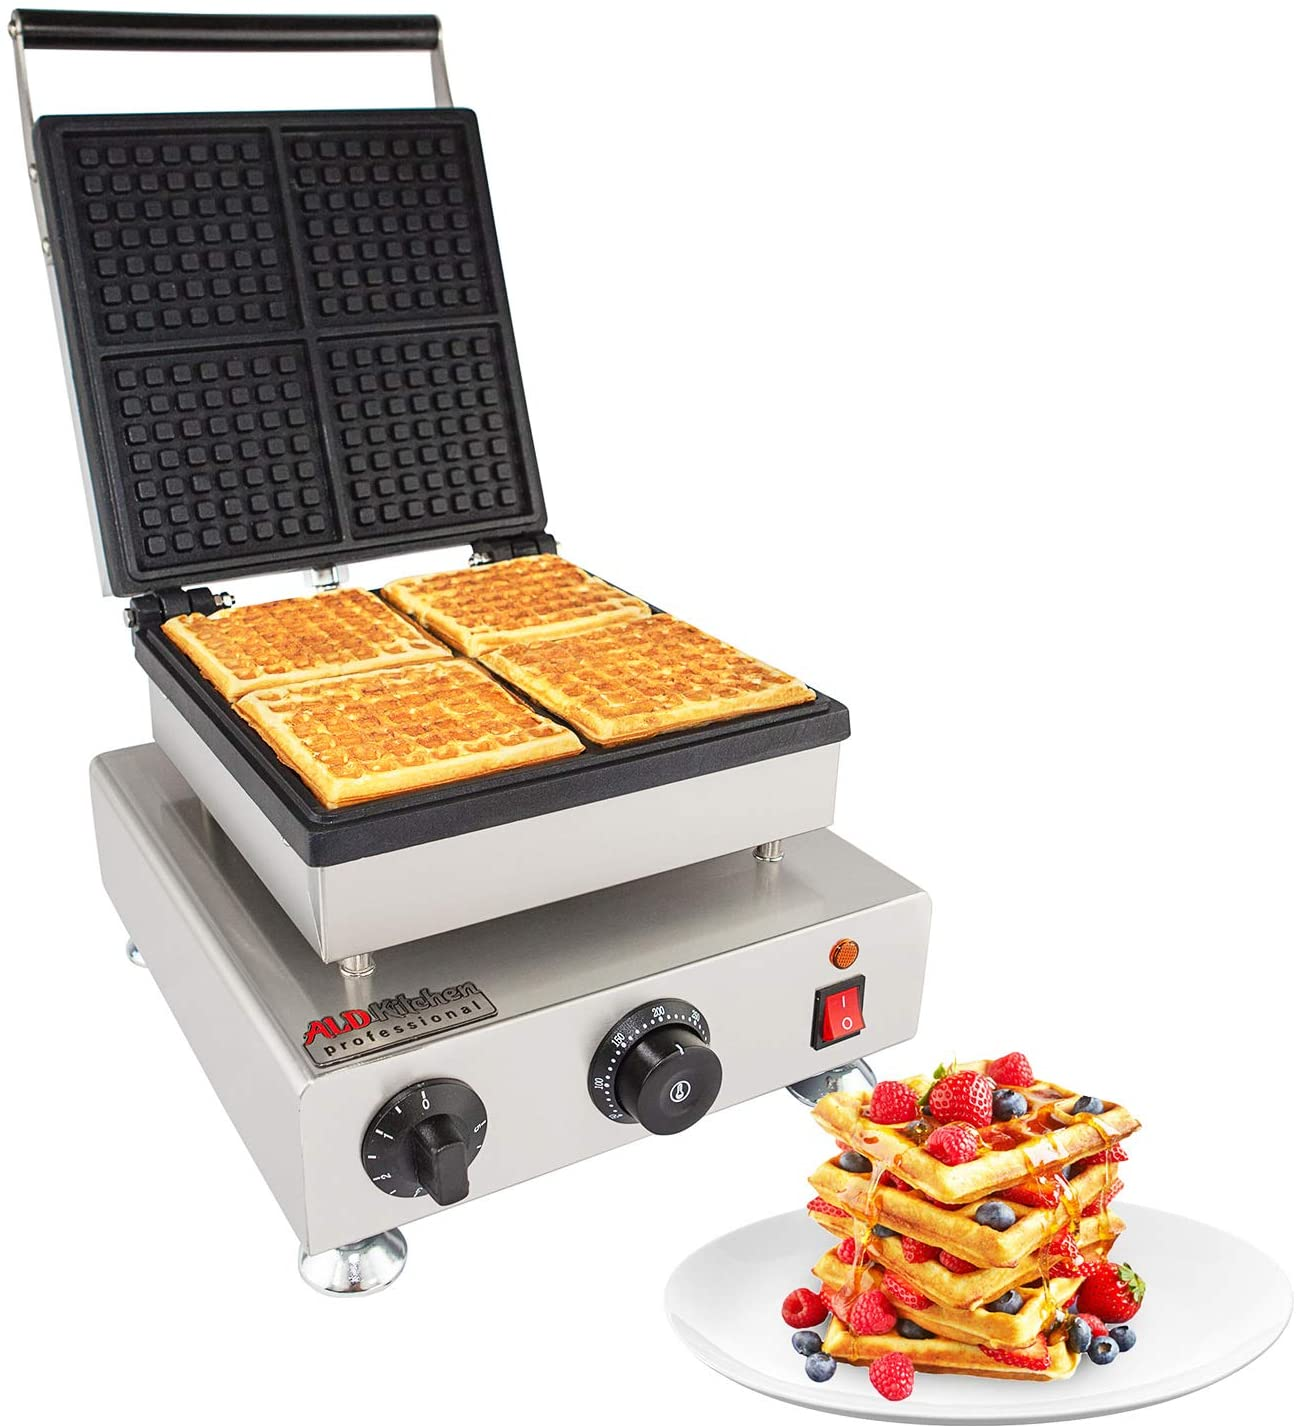 ALDKitchen Belgian Waffle Iron | Press Type | 4 Square Waffles | Professional Use | Stainless Steel | Nonstick | 110V